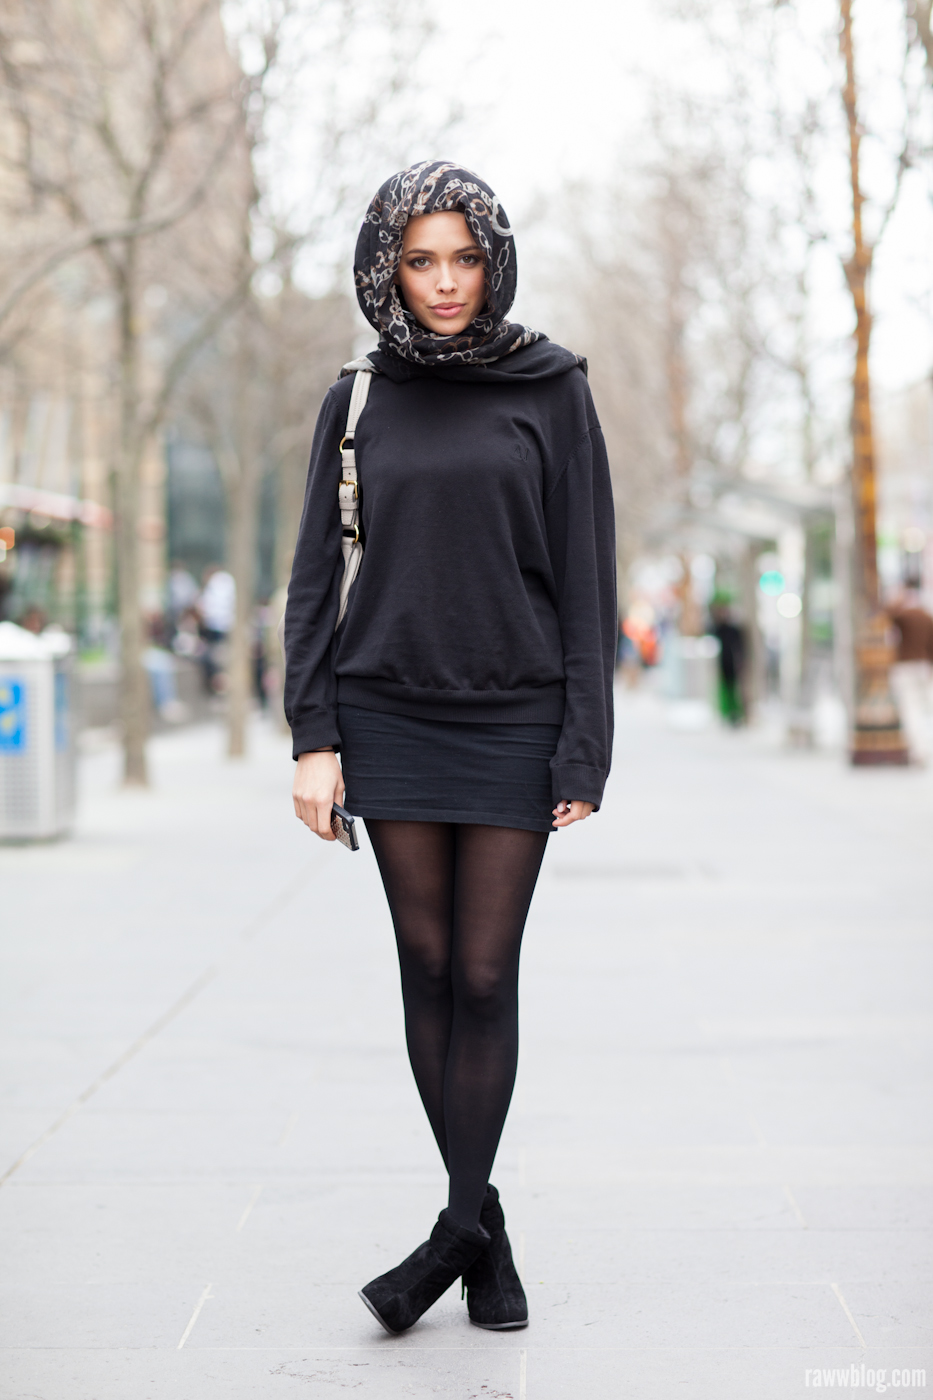 Model Off Duty Look - All Black